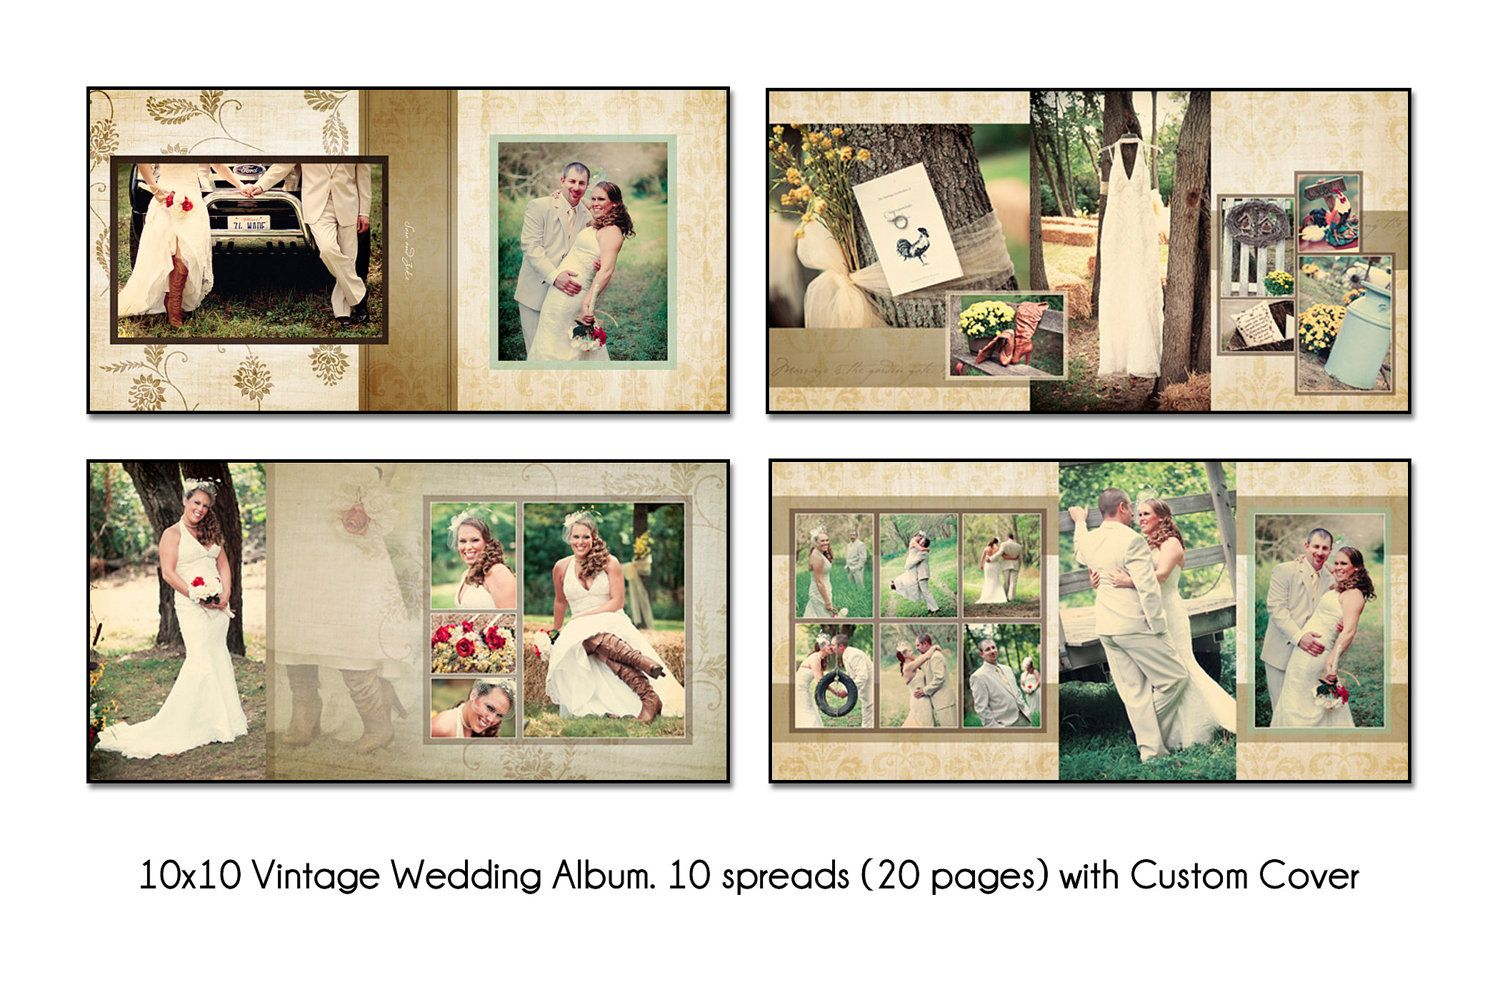 Wedding Album Design Ideas black tie wedding album design plumeria album design Vintage 10x10 Album Template 10 Spread20 Page Design With Custom Cover Psd Digital File